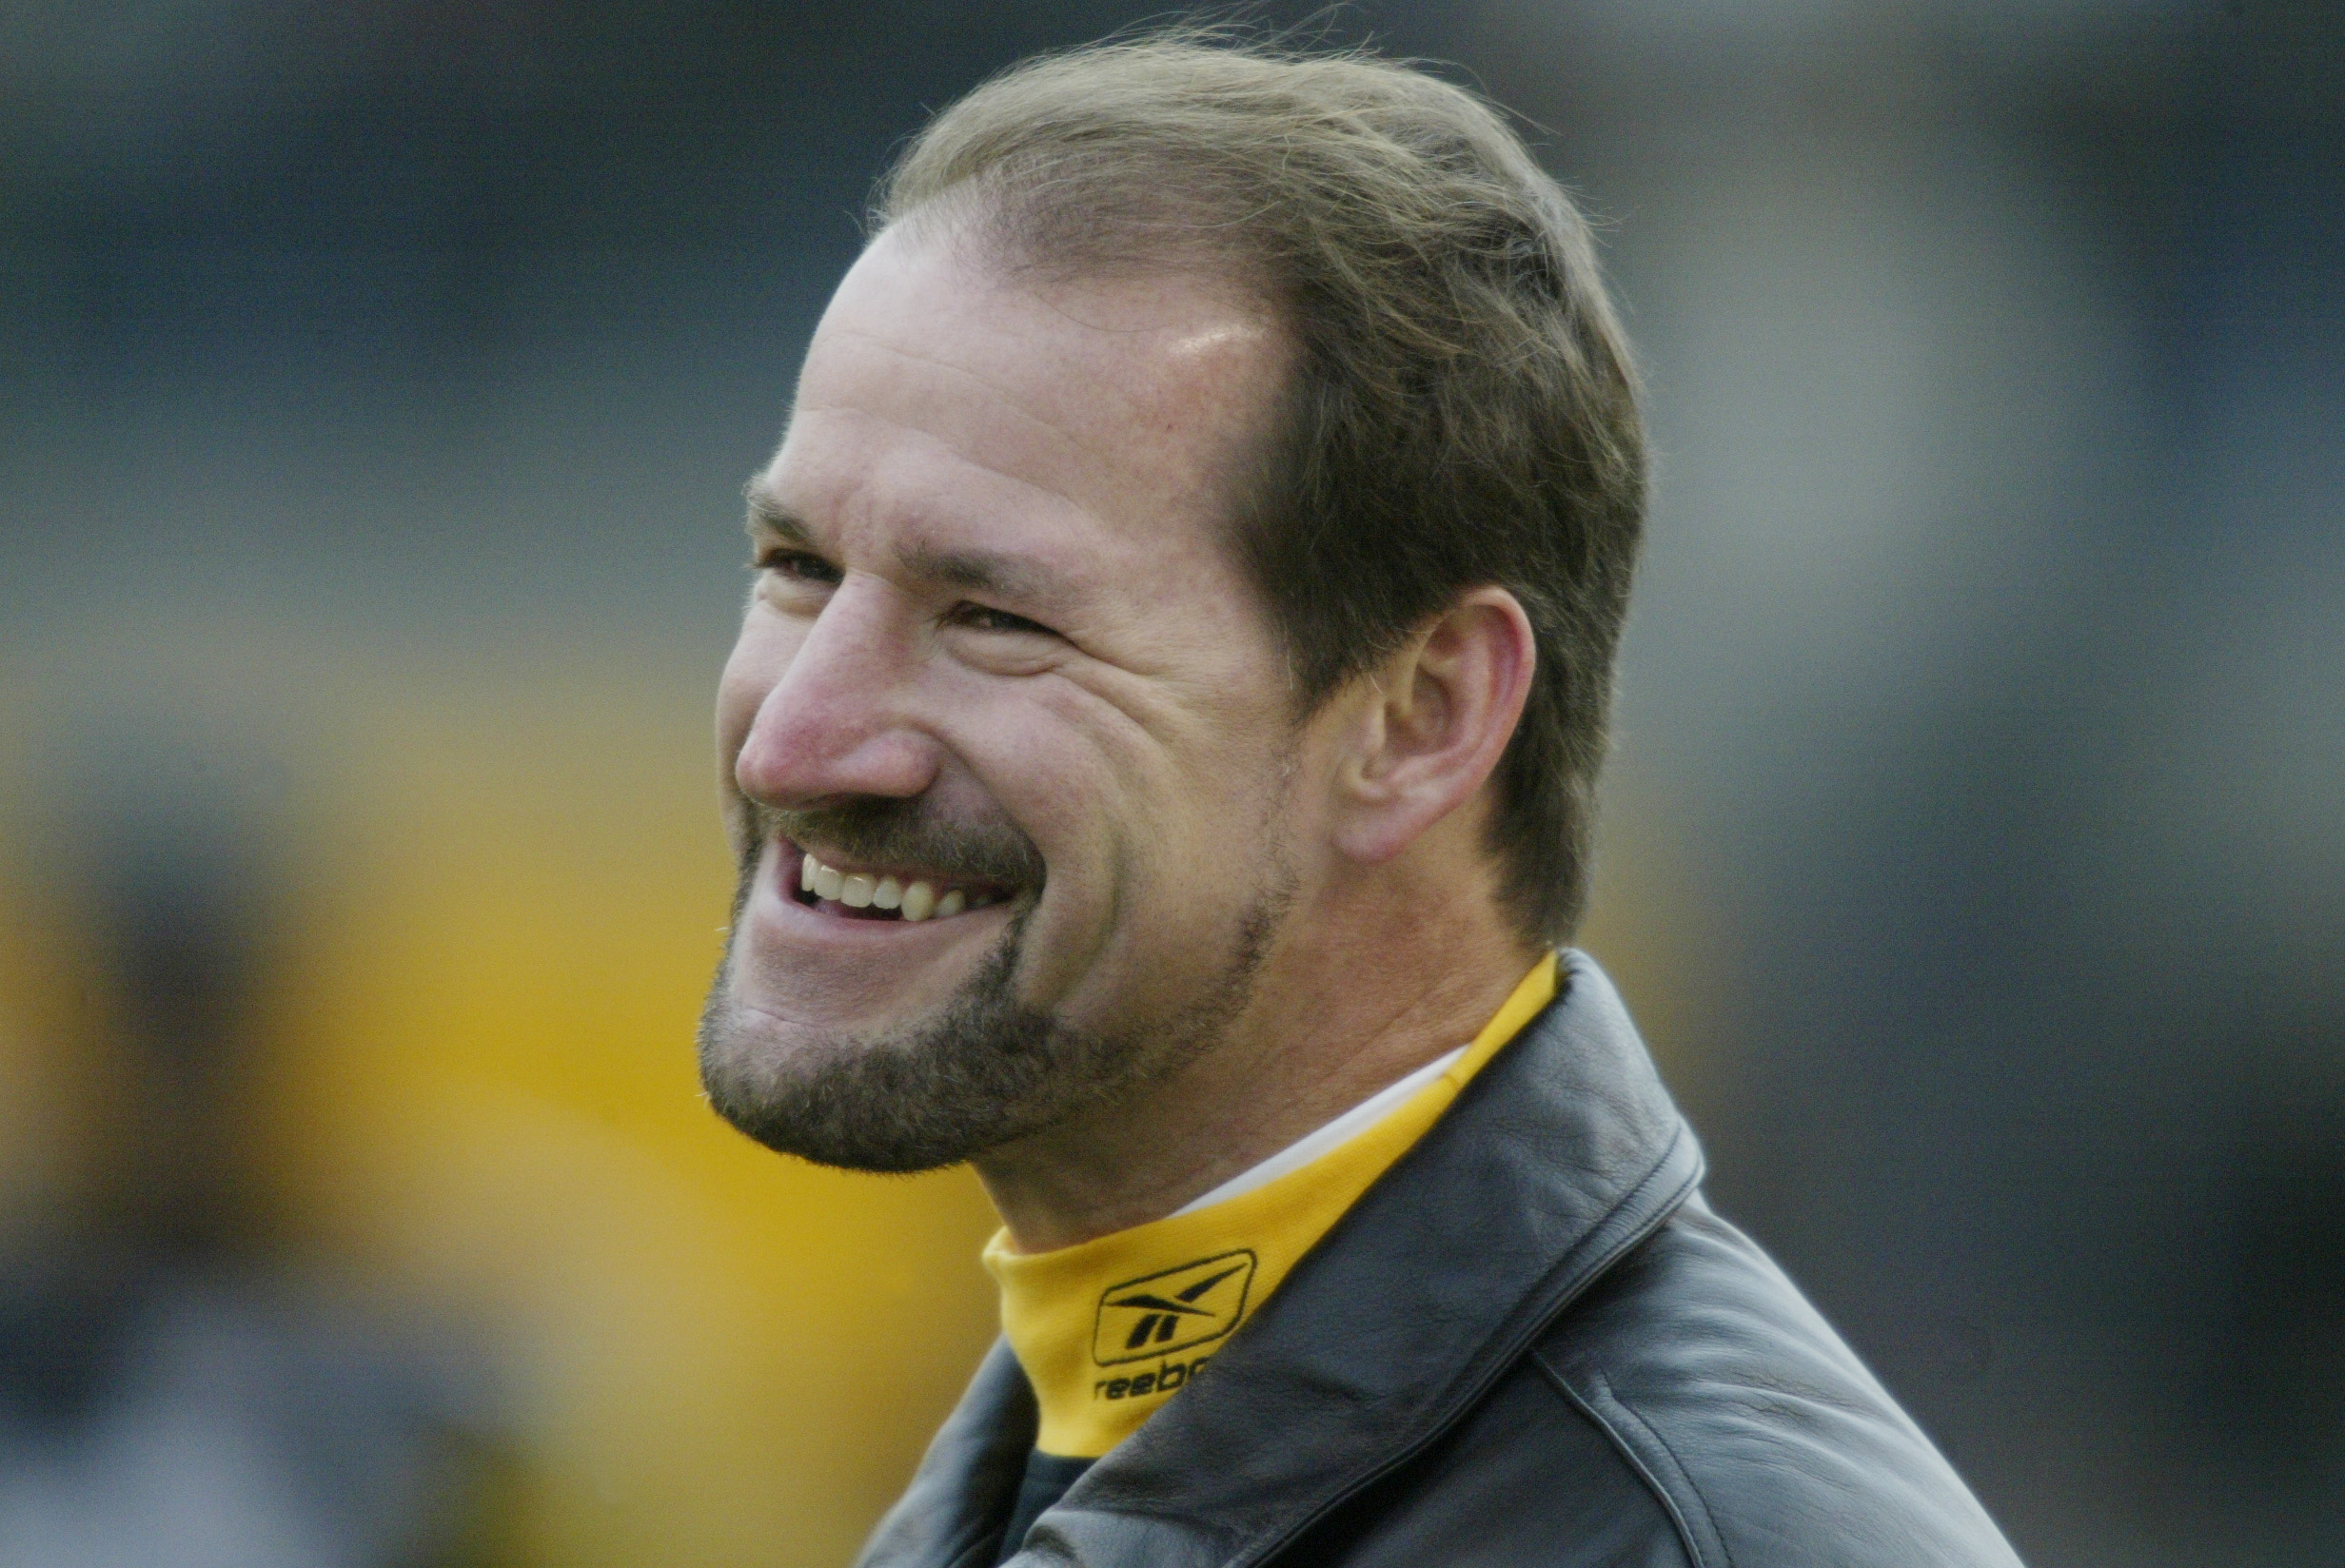 b752dfaa0 PITTSBURGH - DECEMBER 8   Coach Bill Cowher of the Pittsburgh Steelers  smiles on the field